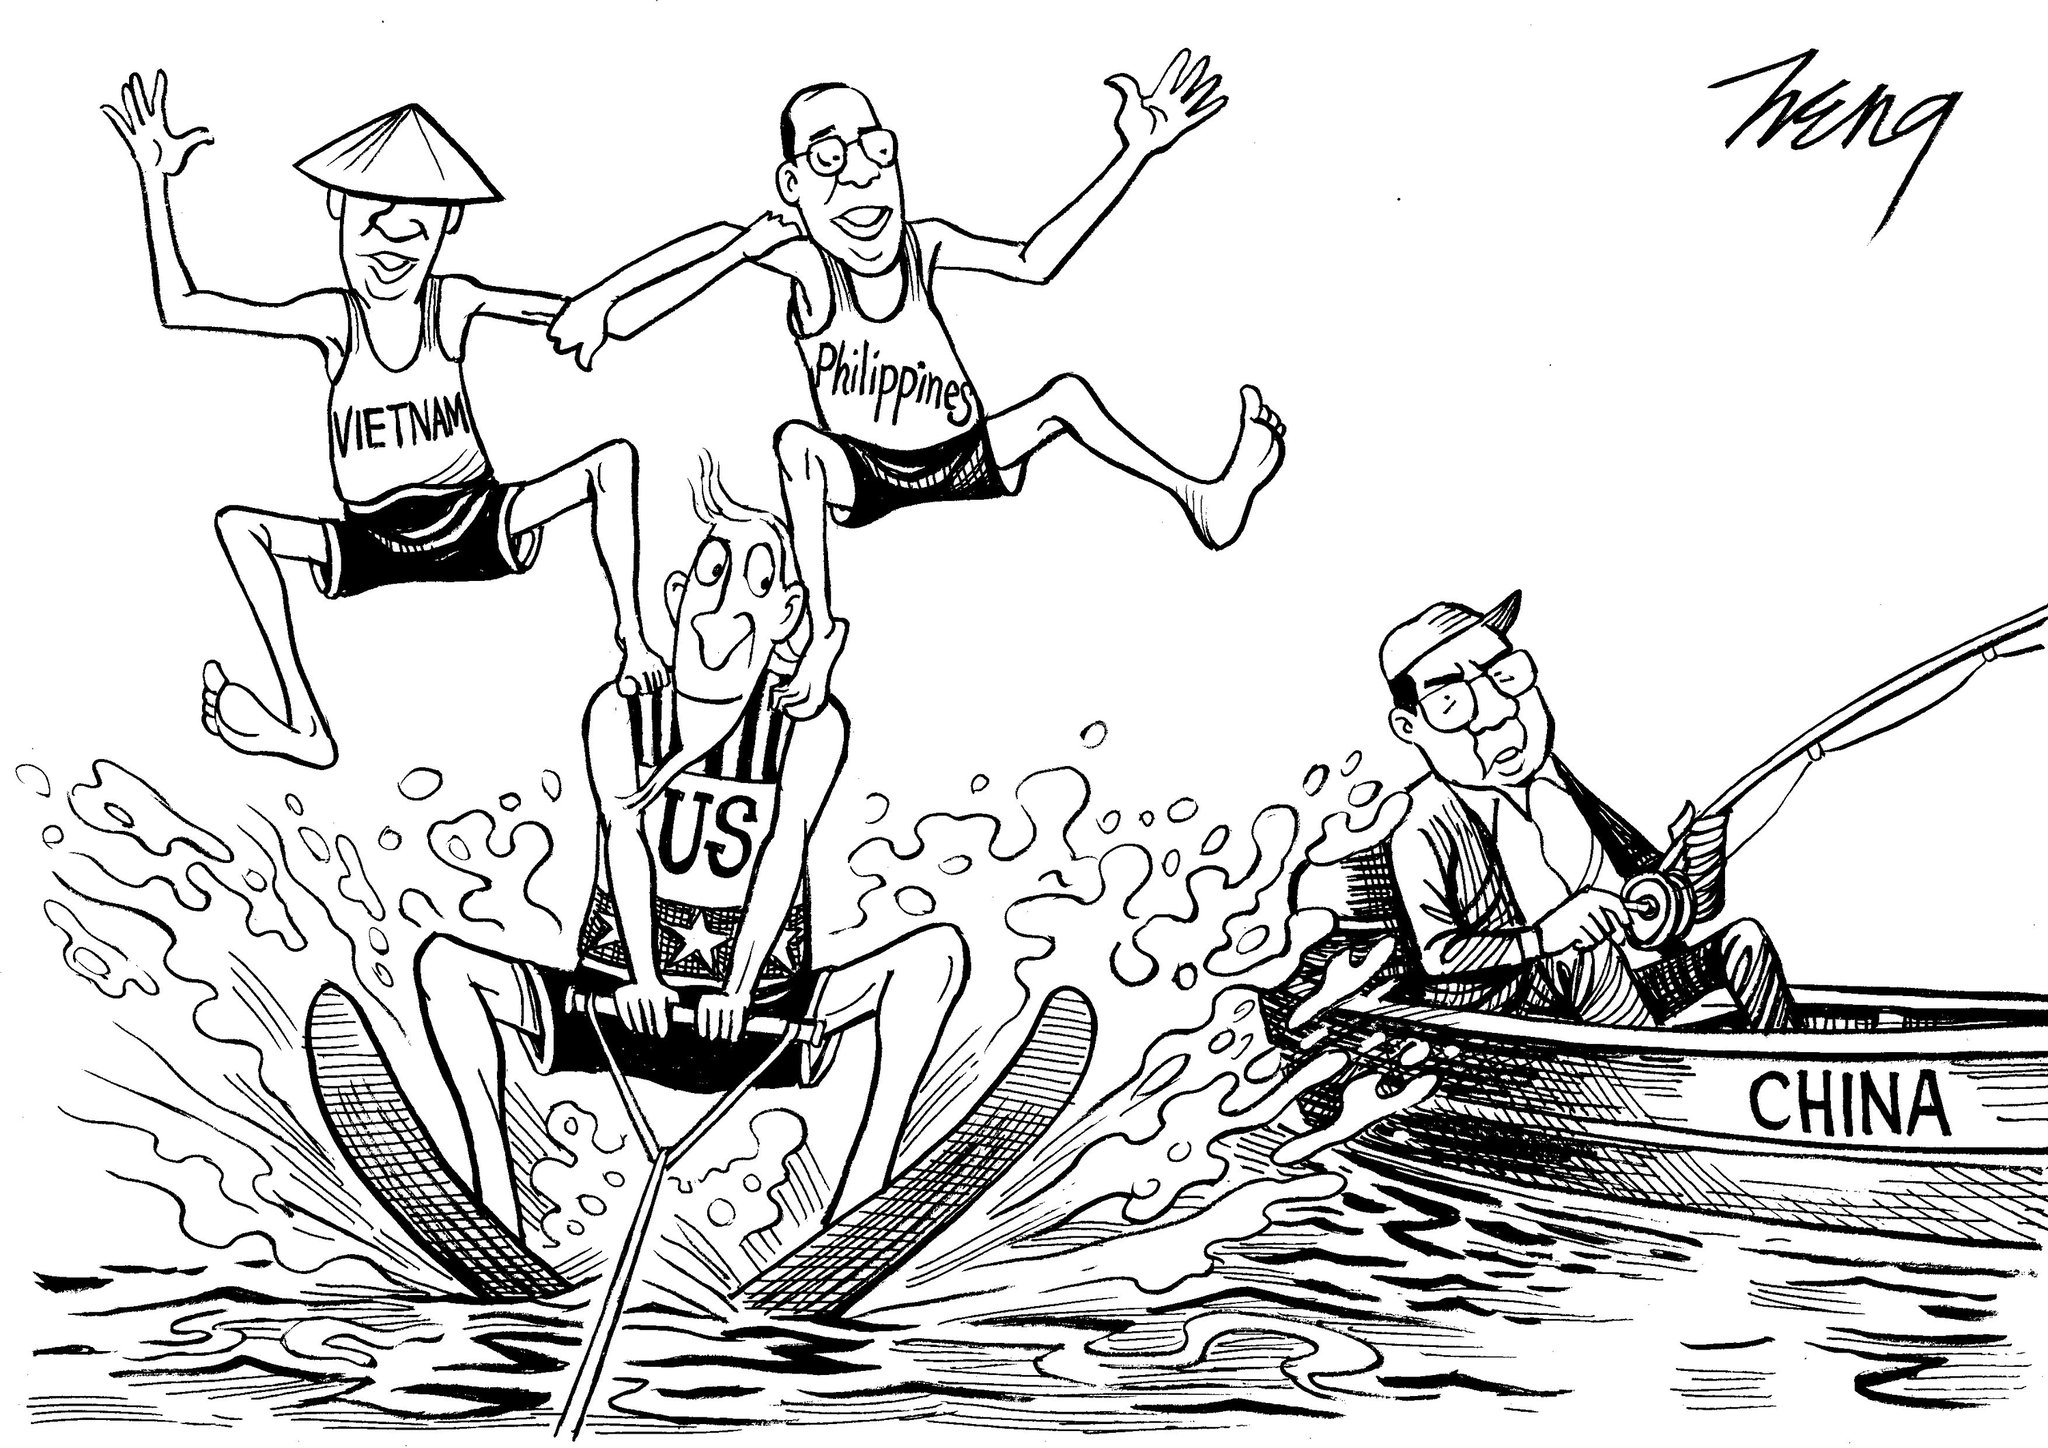 Editorial Cartoon Disputes Over The South China Sea